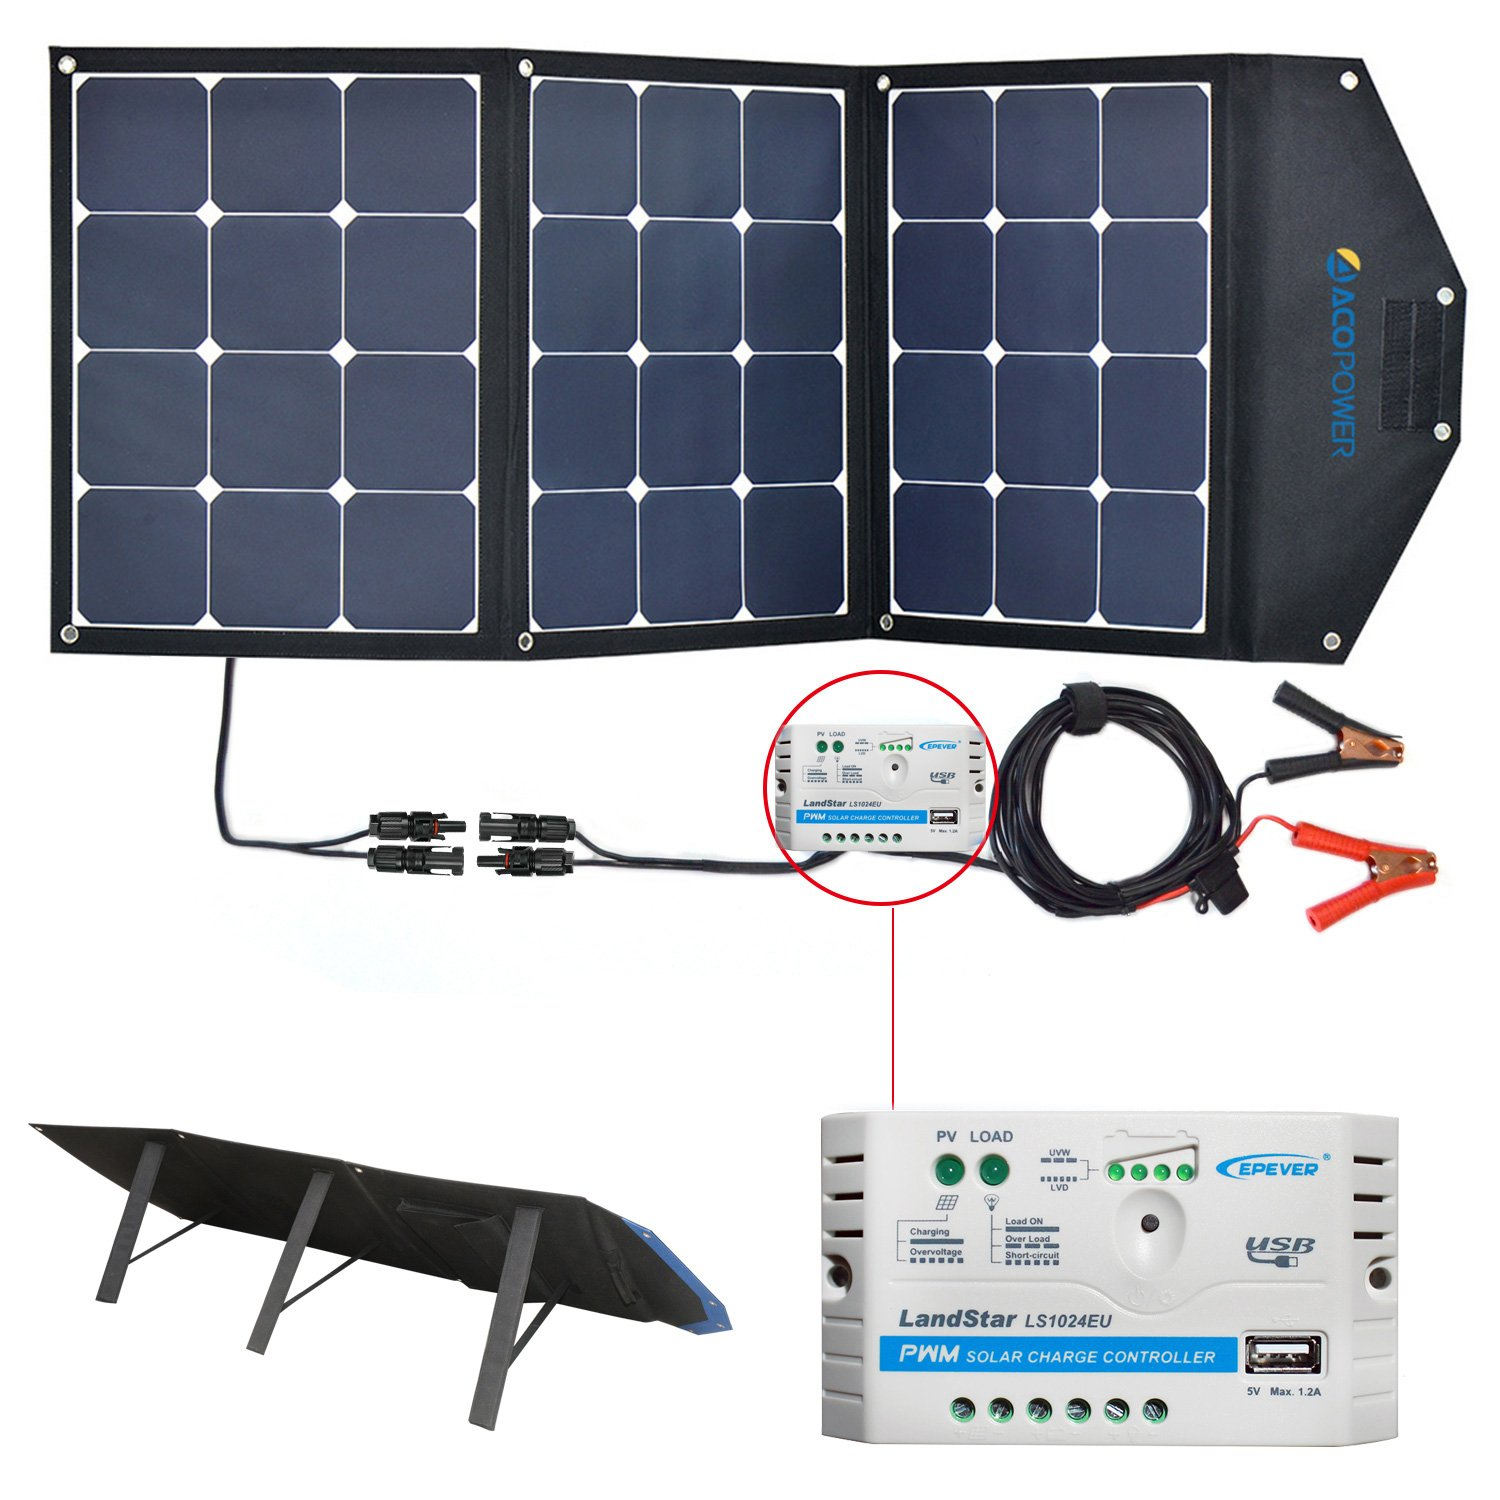 ACOPOWER 12V 105W Foldable Solar Panel Kit; Portable Solar Charger Suitcase of Monocrystalline Module & 10A Charge Controller For RV, Boat